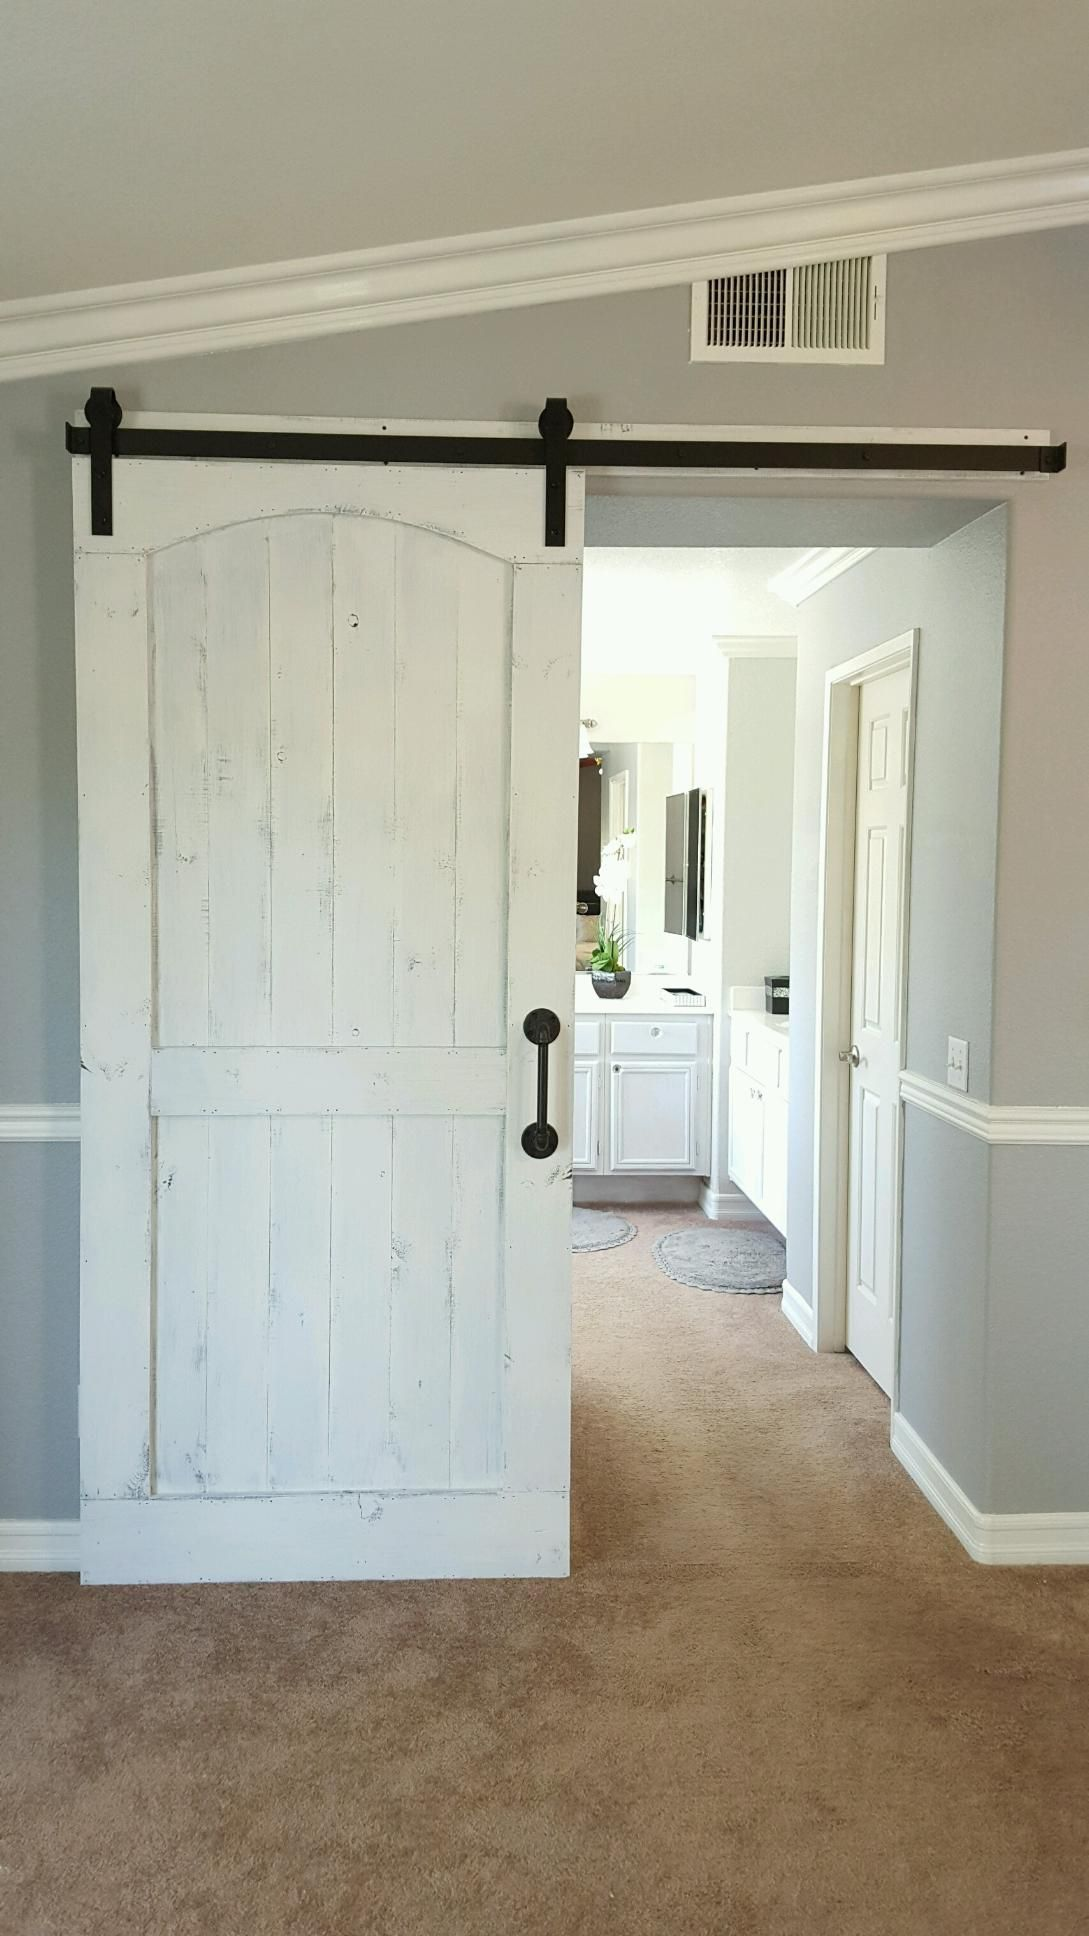 Distressed White Barn Door With Hardware For A Master Bedroom